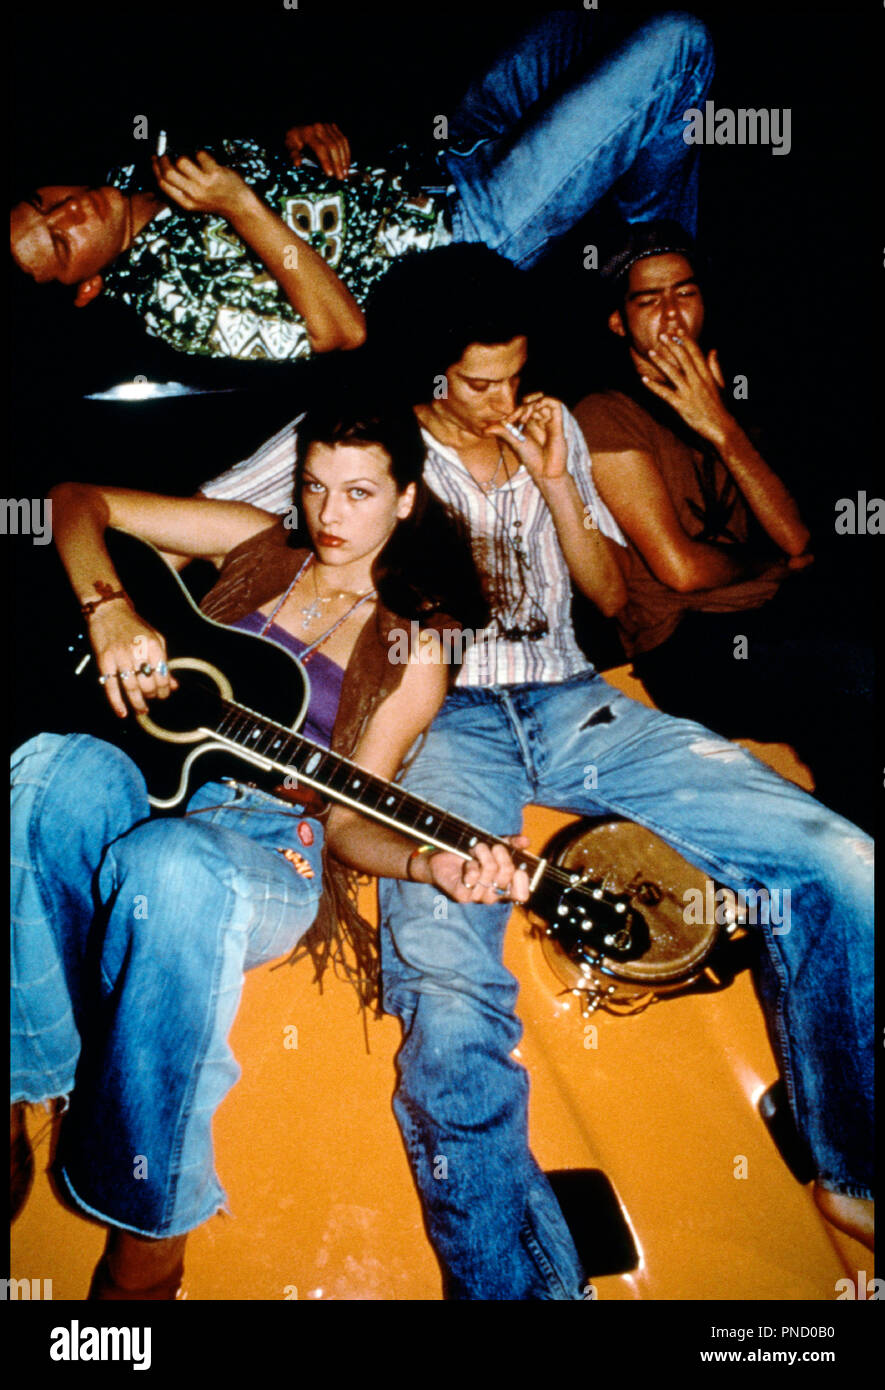 Prod DB © Alphaville Films / DR GENERATION REBELLE (DAZED AND CONFUSED) de Richard Linklater 1993 USA avec Milla Jovovich et Shawn Andrews jeune Stock Photo